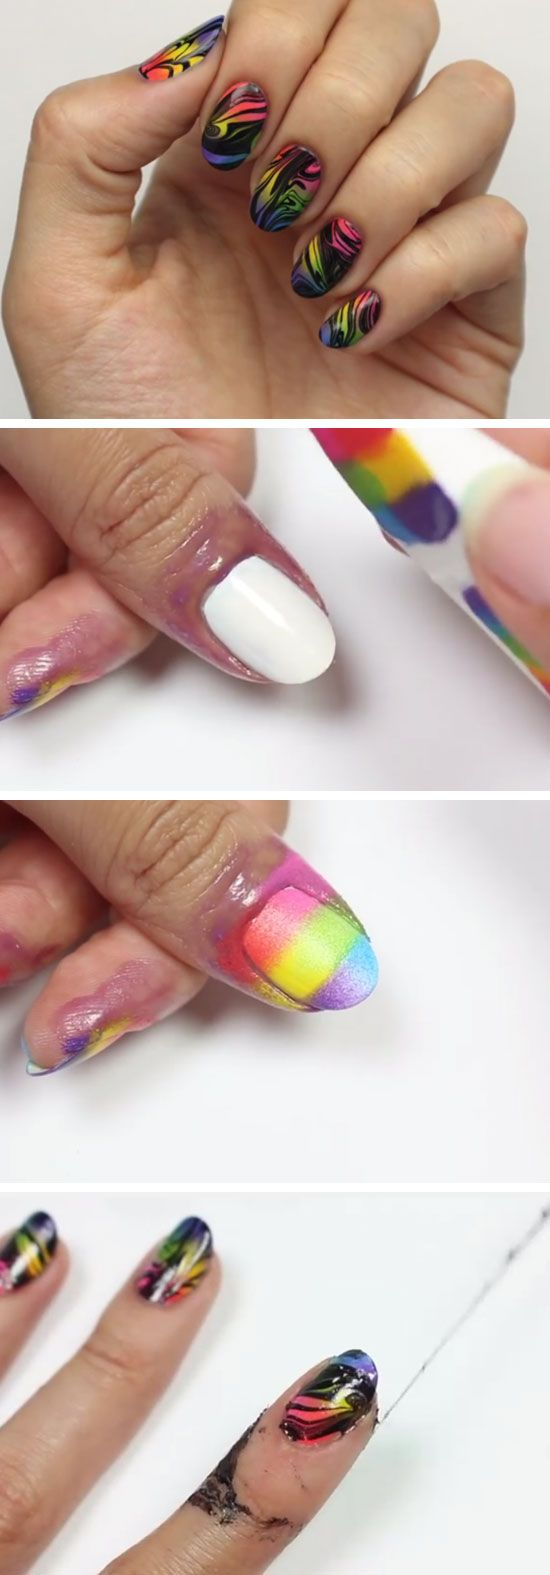 Black Ink Spill Rainbow Ombre Nails 18 Easy Summer Nails Designs